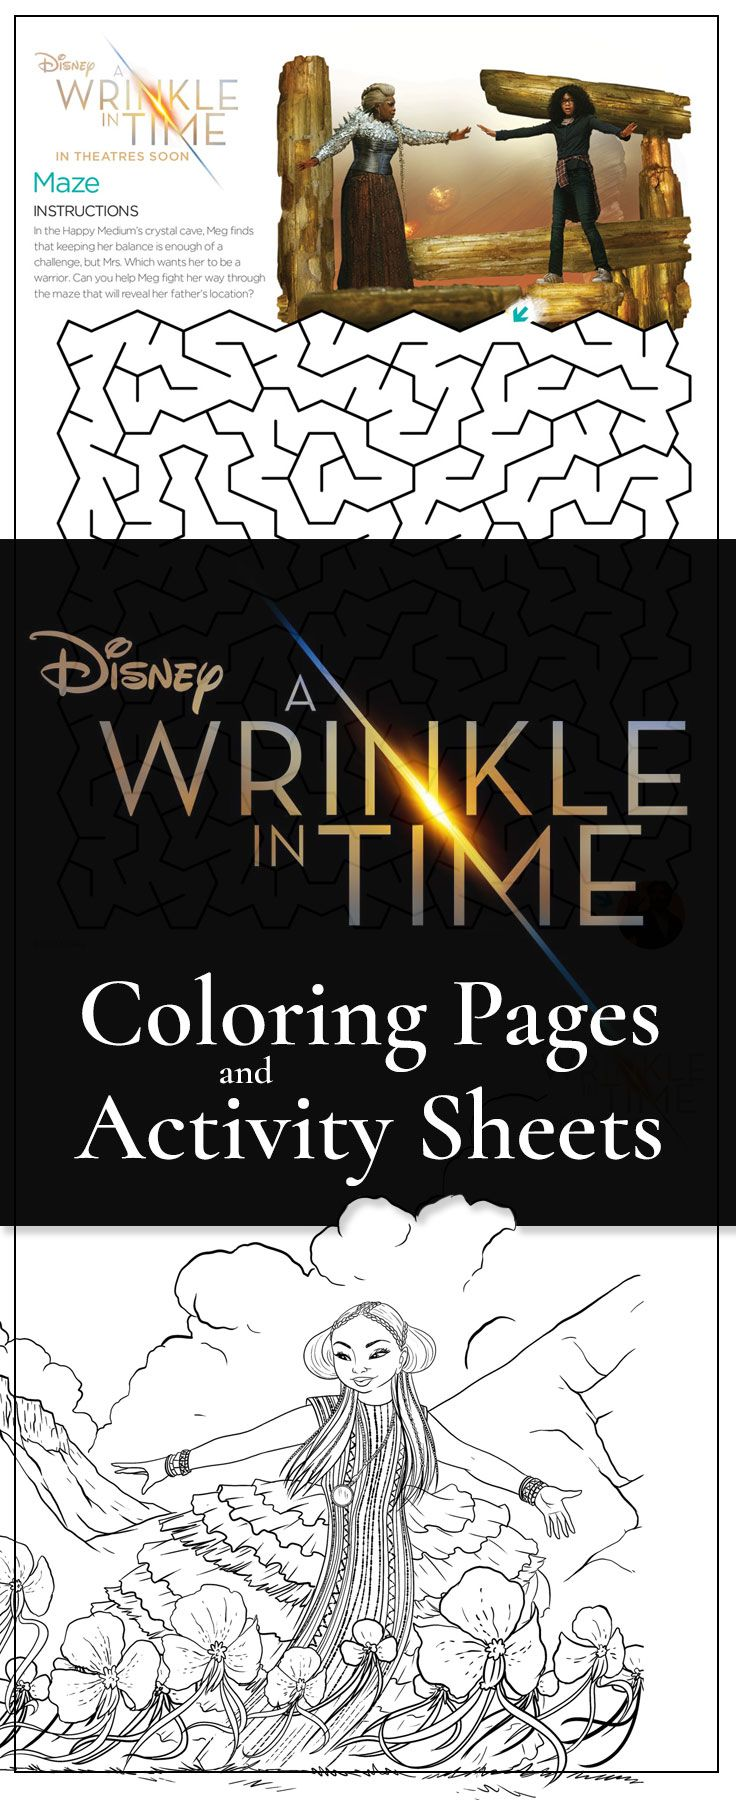 FREE Printable A Wrinkle in Time coloring and activity sheets     A Wrinke In Time free printables from Disney  Printable coloring pages and  activity sheets